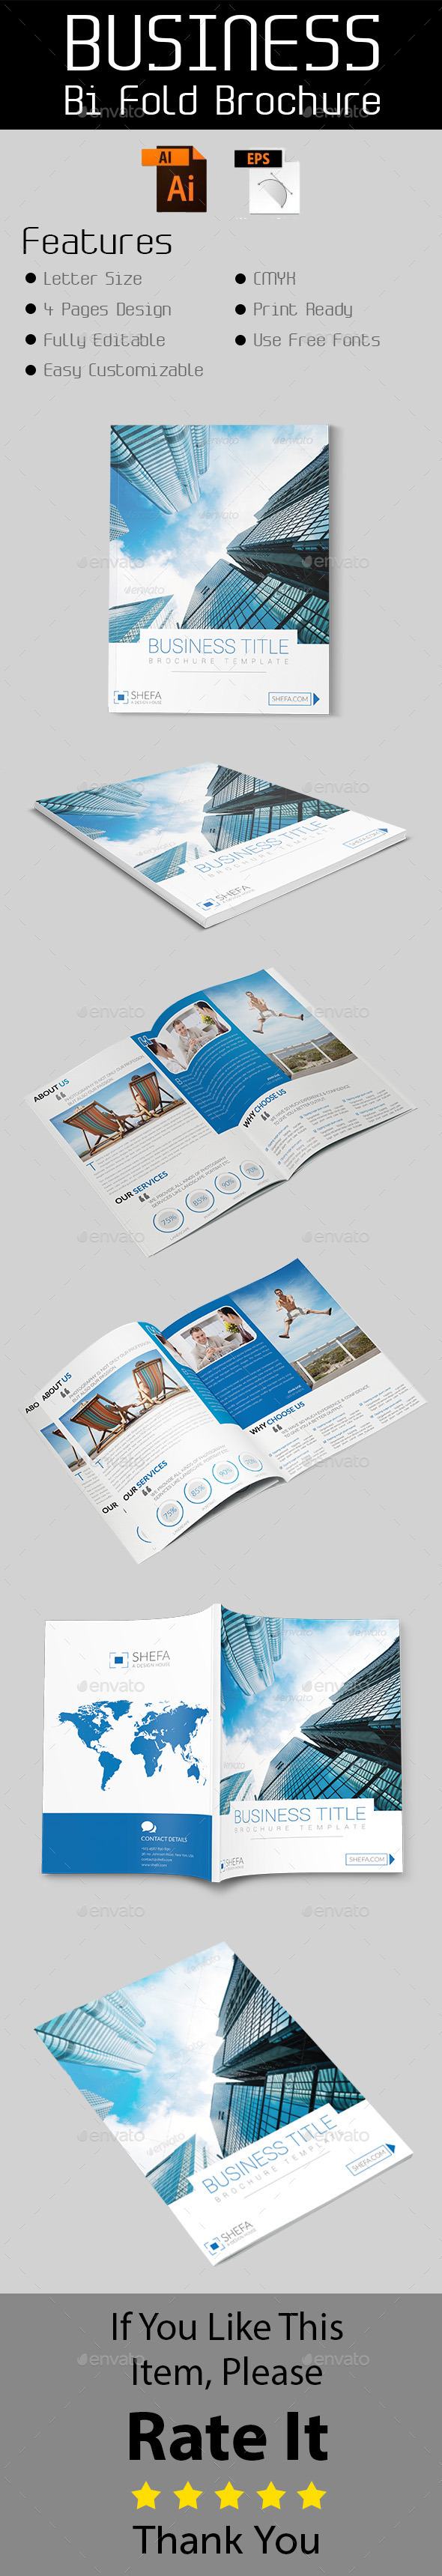 GraphicRiver Business Bi-Fold Brochure Template 10682767